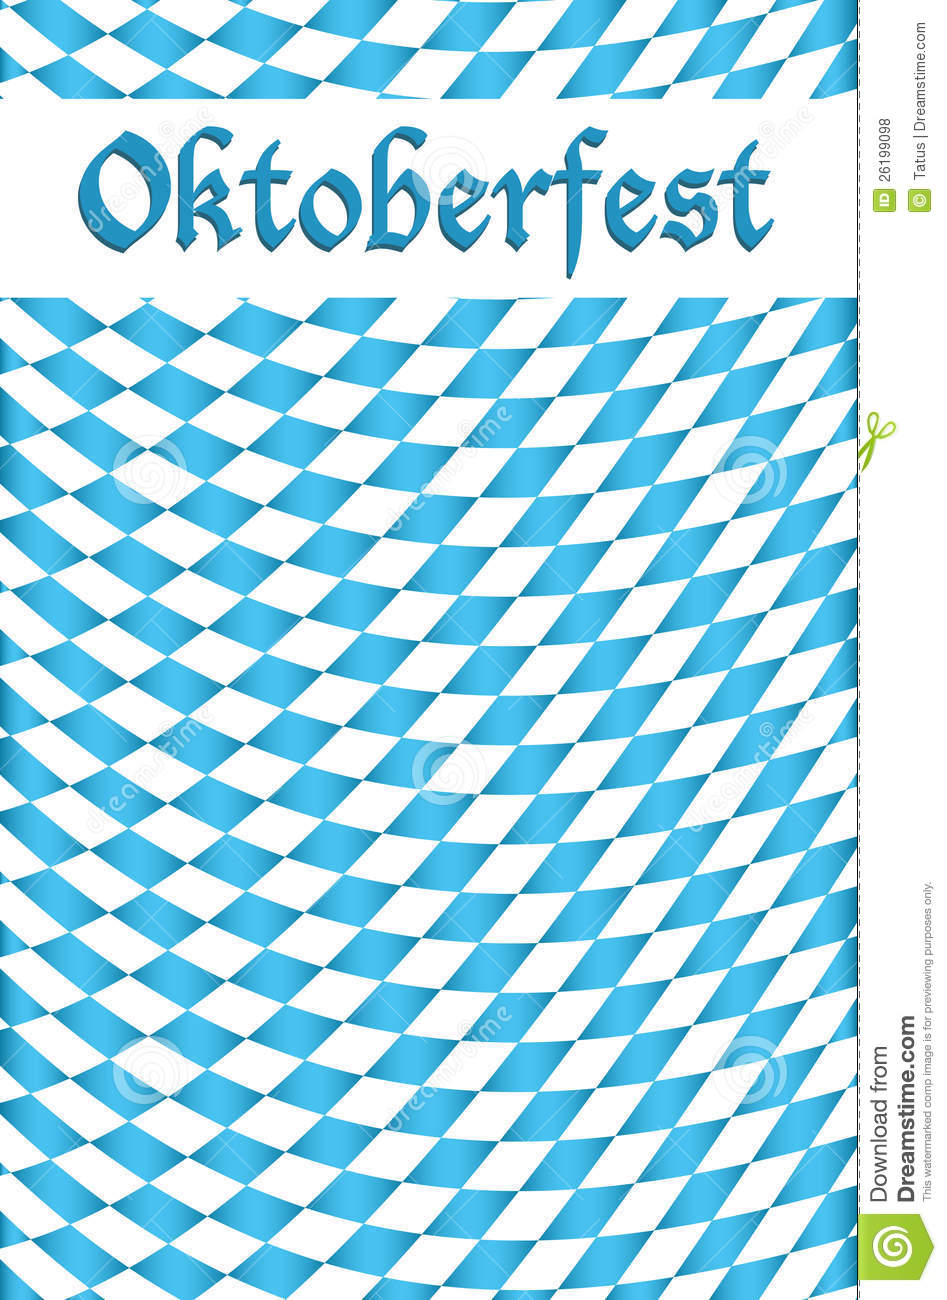 oktoberfest celebration design background editorial stock photo